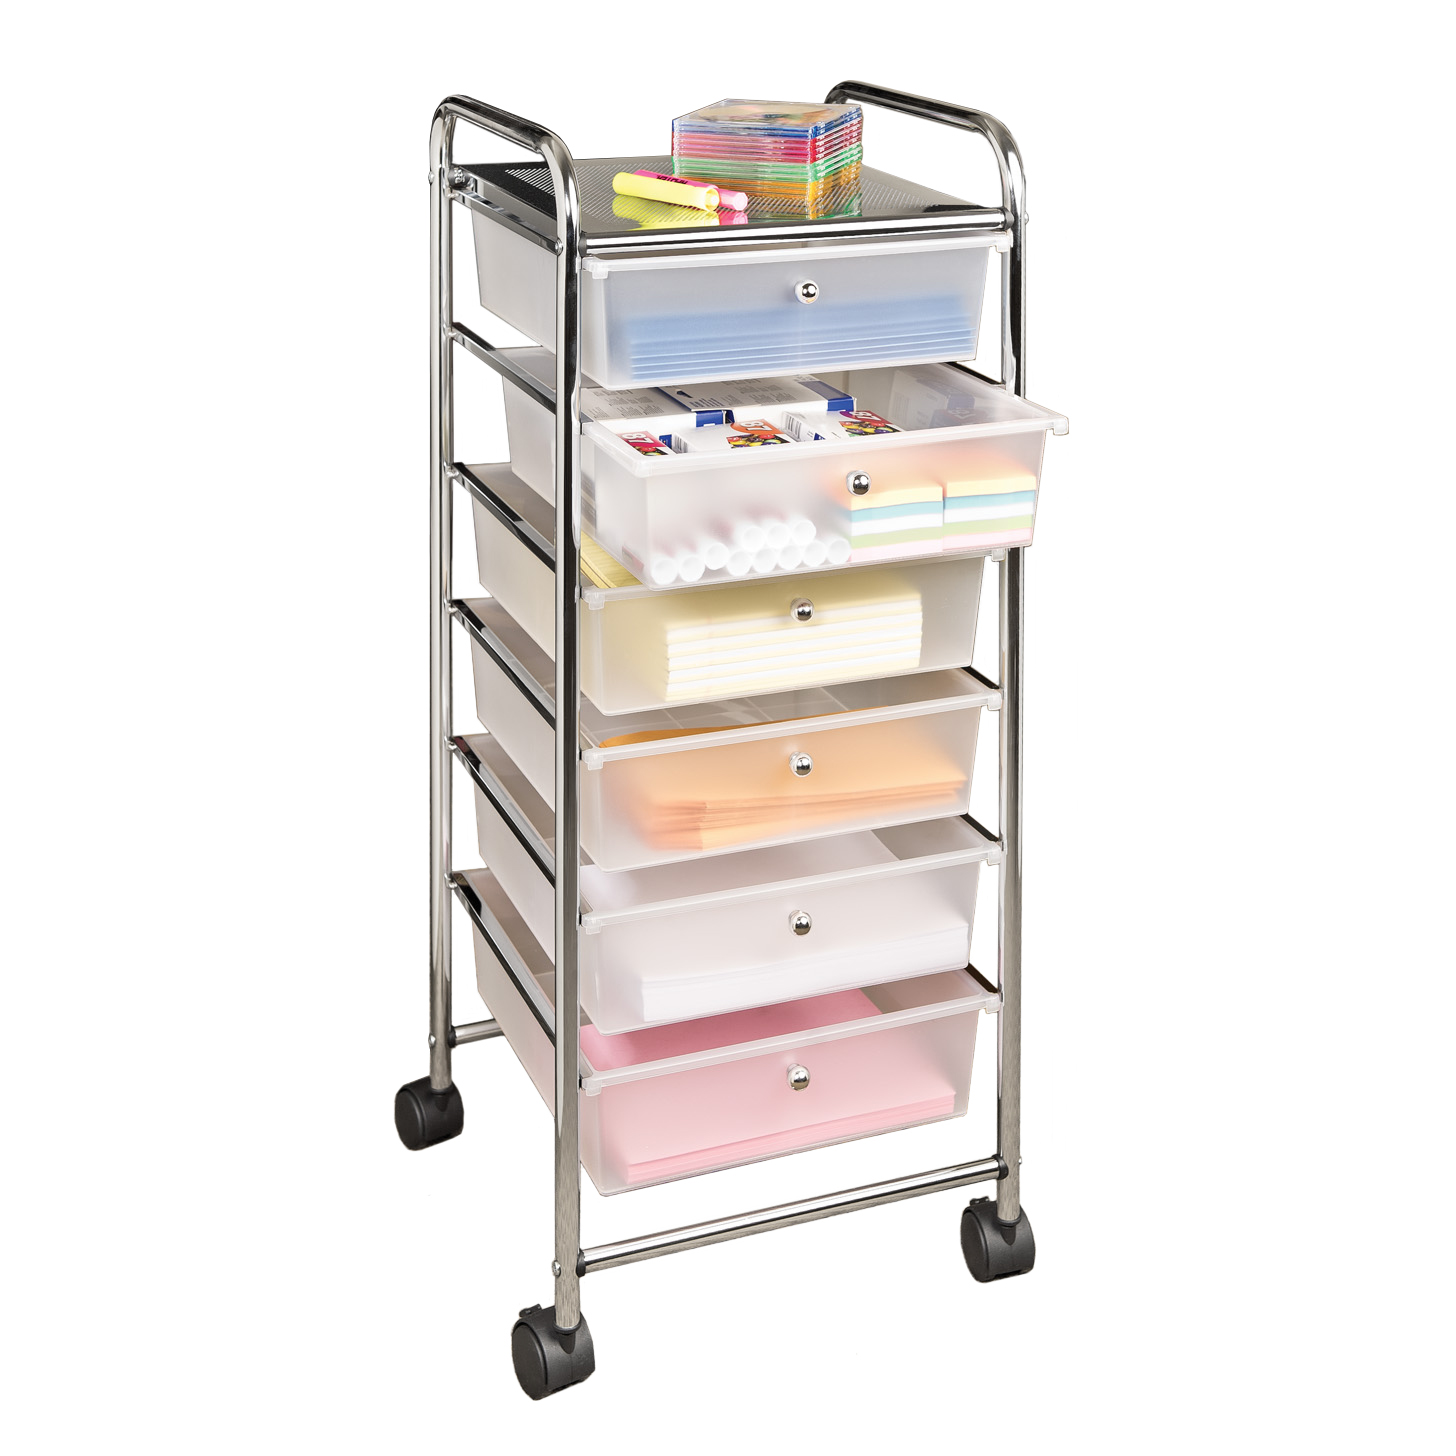 Large 6-Drawer Storage Bin Organizer Cart, Frosted White by Seville Classics